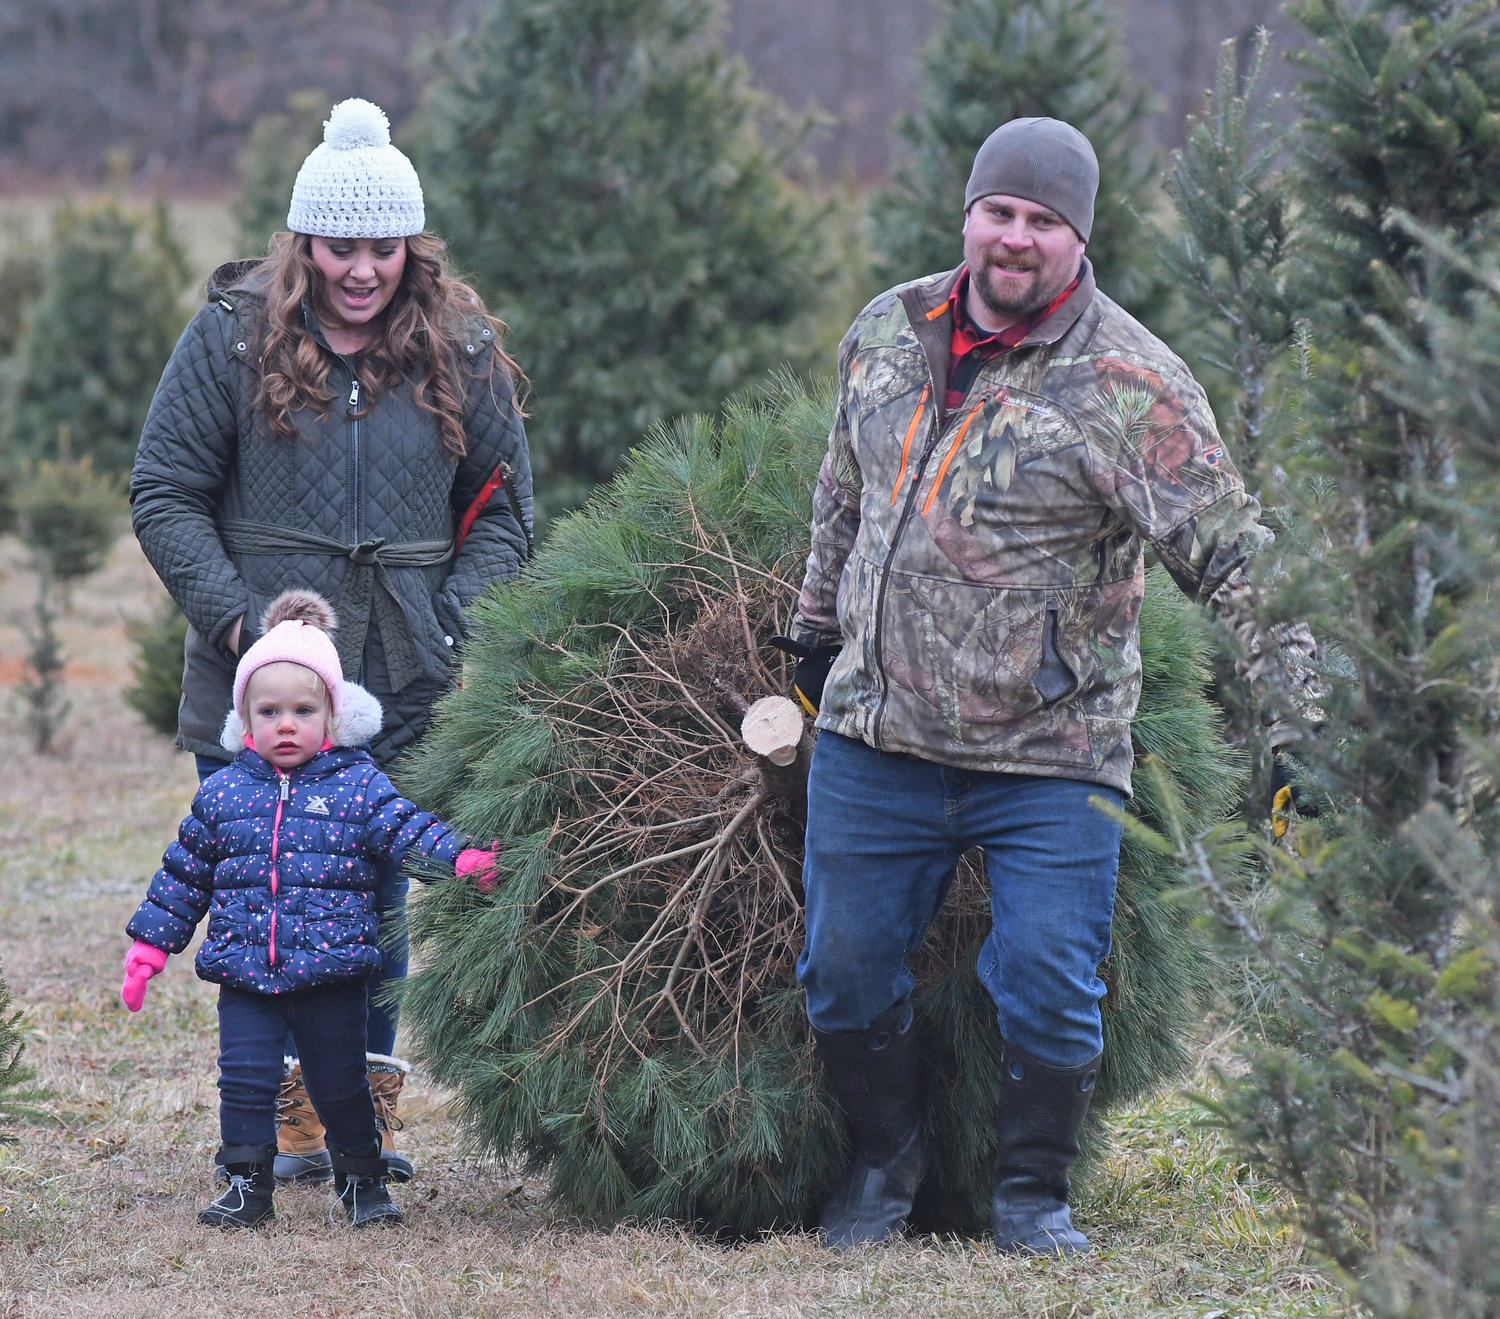 LITTLE HELPER — Two-year-old Madelynn Roth helps her father Kristopher and mother Kristine drag their Christmas tree on Friday at Moose Track Acres in Boonville. They selected an English species of white pine.